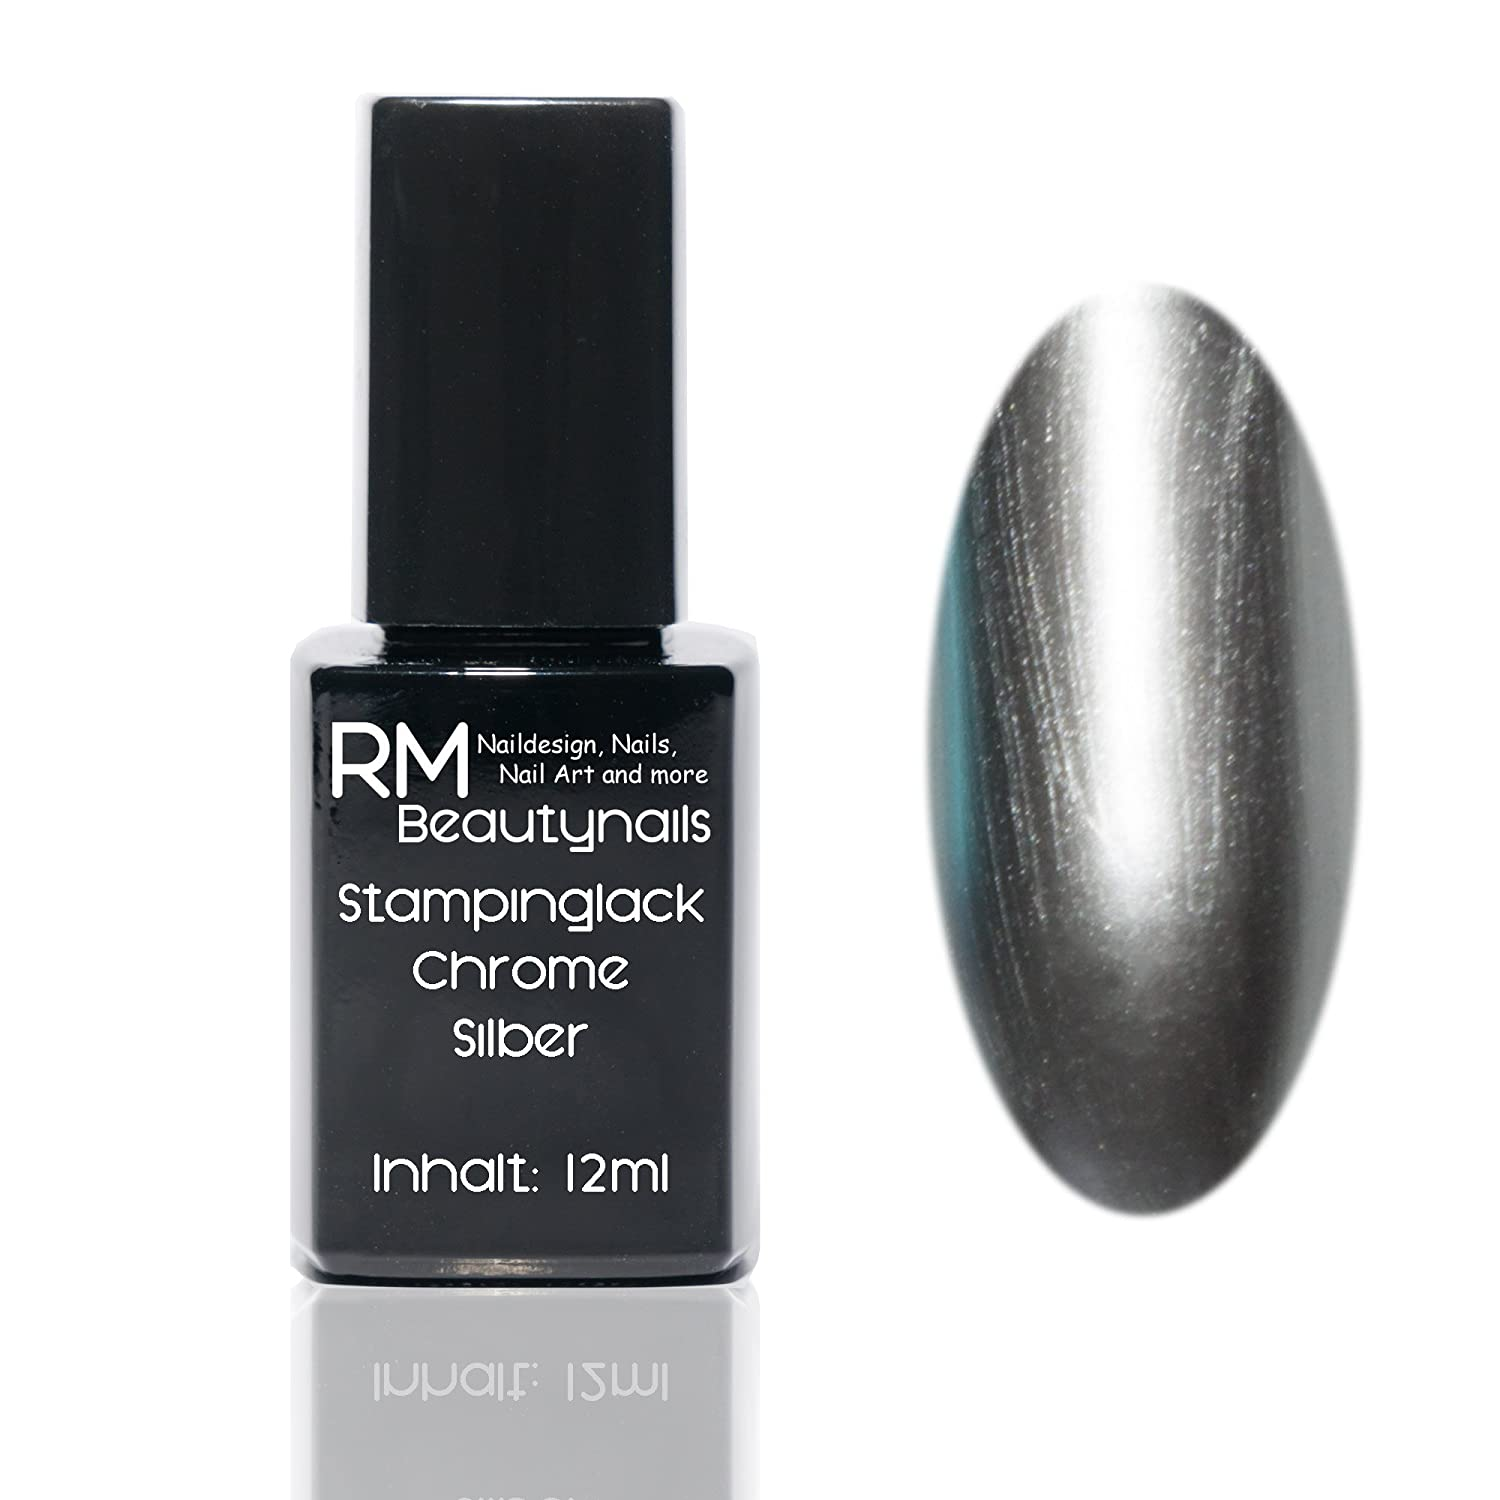 Chrome Effekt Stampinglack Silber 12ml Stamping Lack Nagellack Nail Polish RM Beautynails